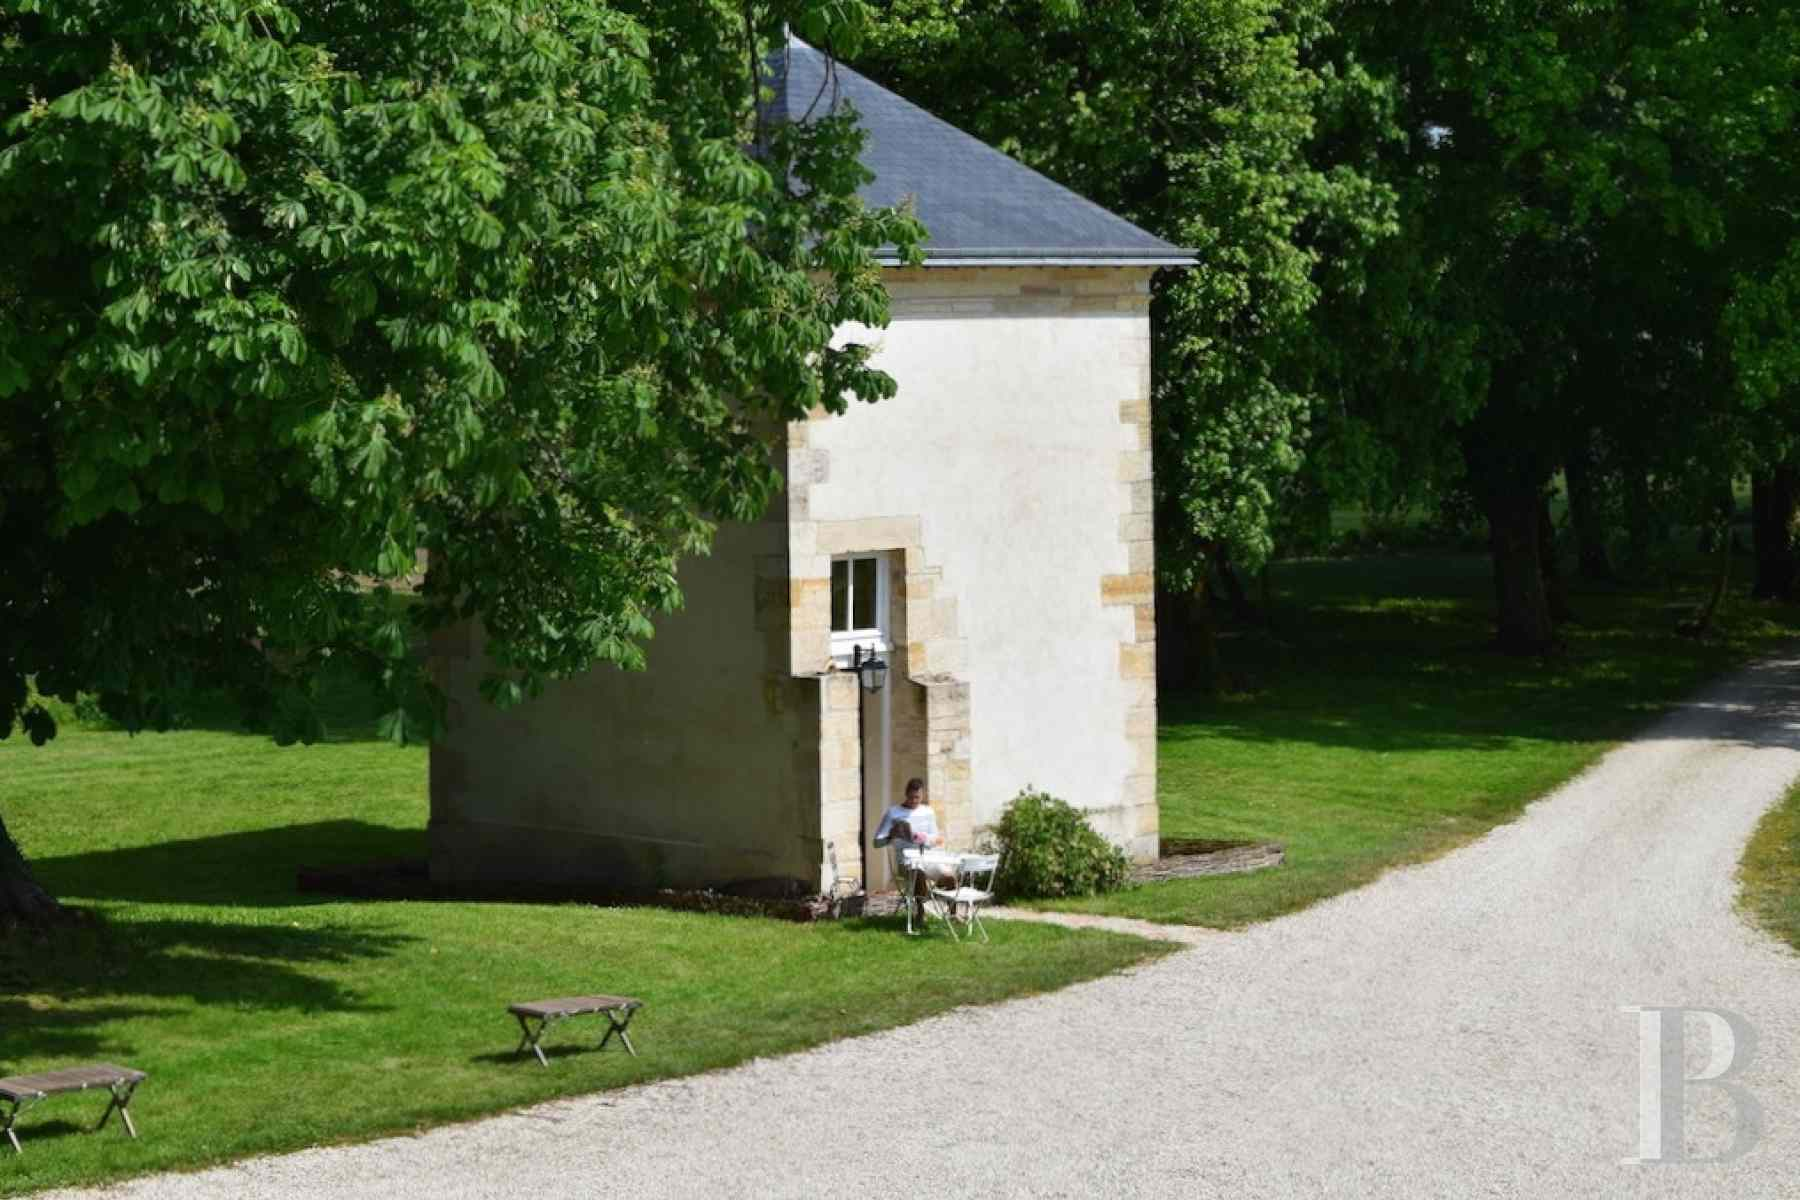 chateaux for sale France champagne ardennes neo palladian - 20 zoom